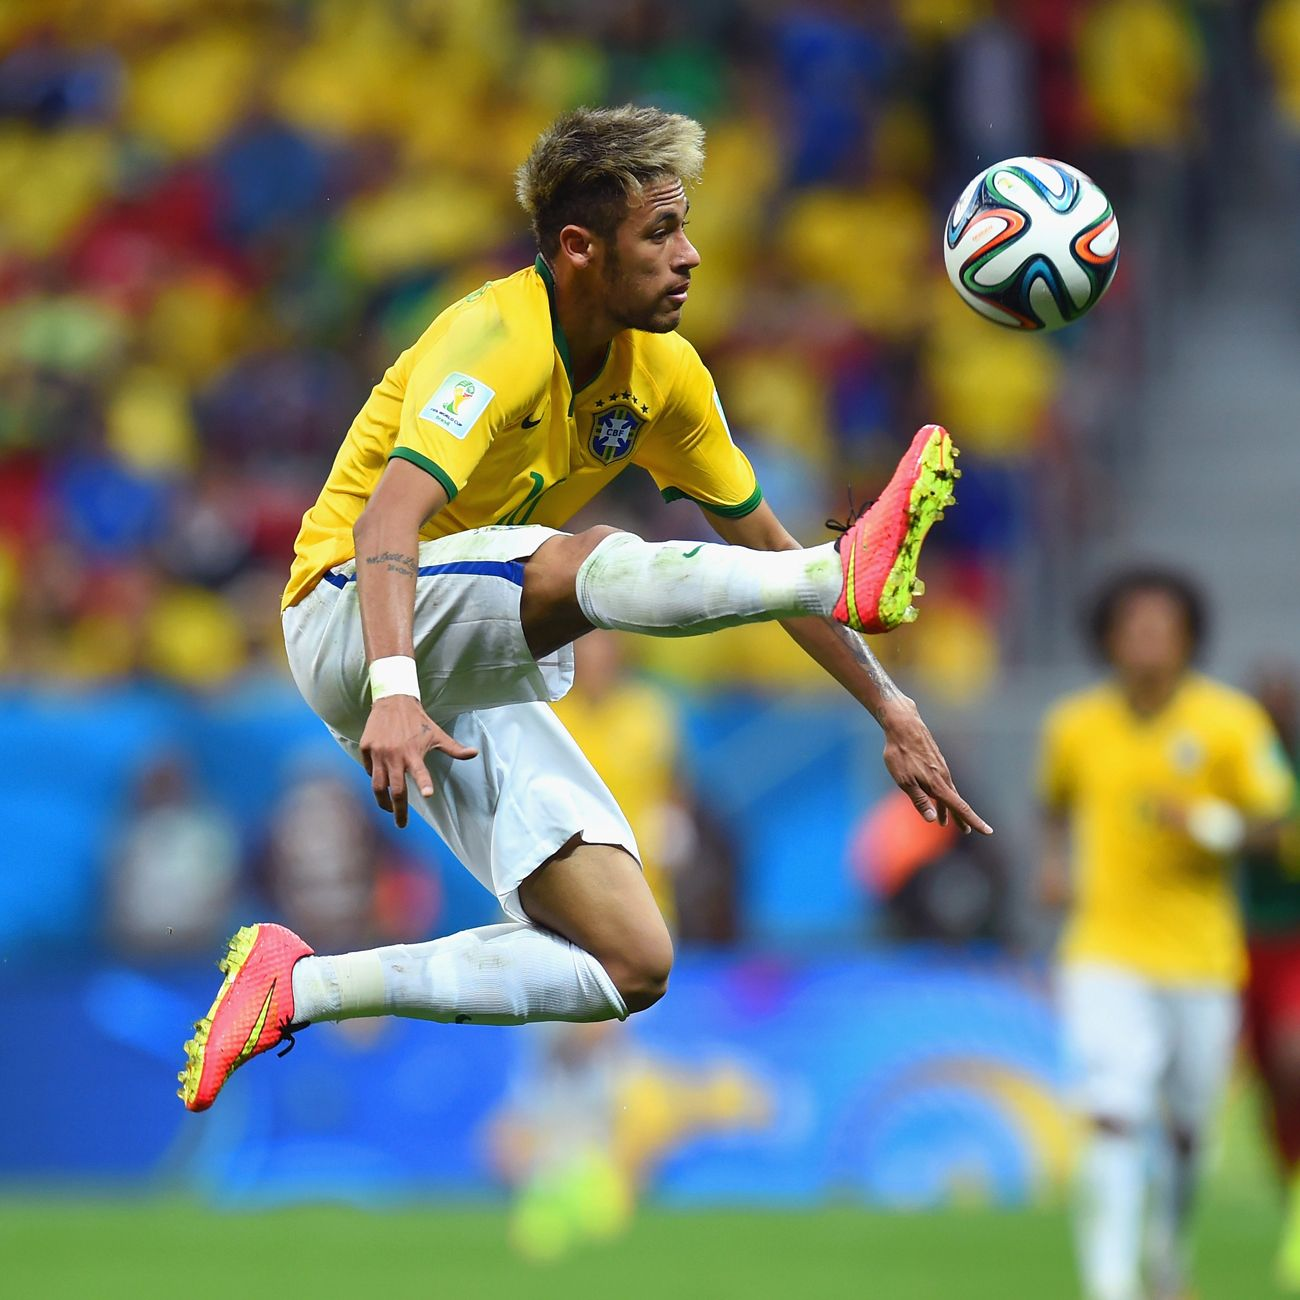 Neymar is a soccer player so motivates me do keep pushing